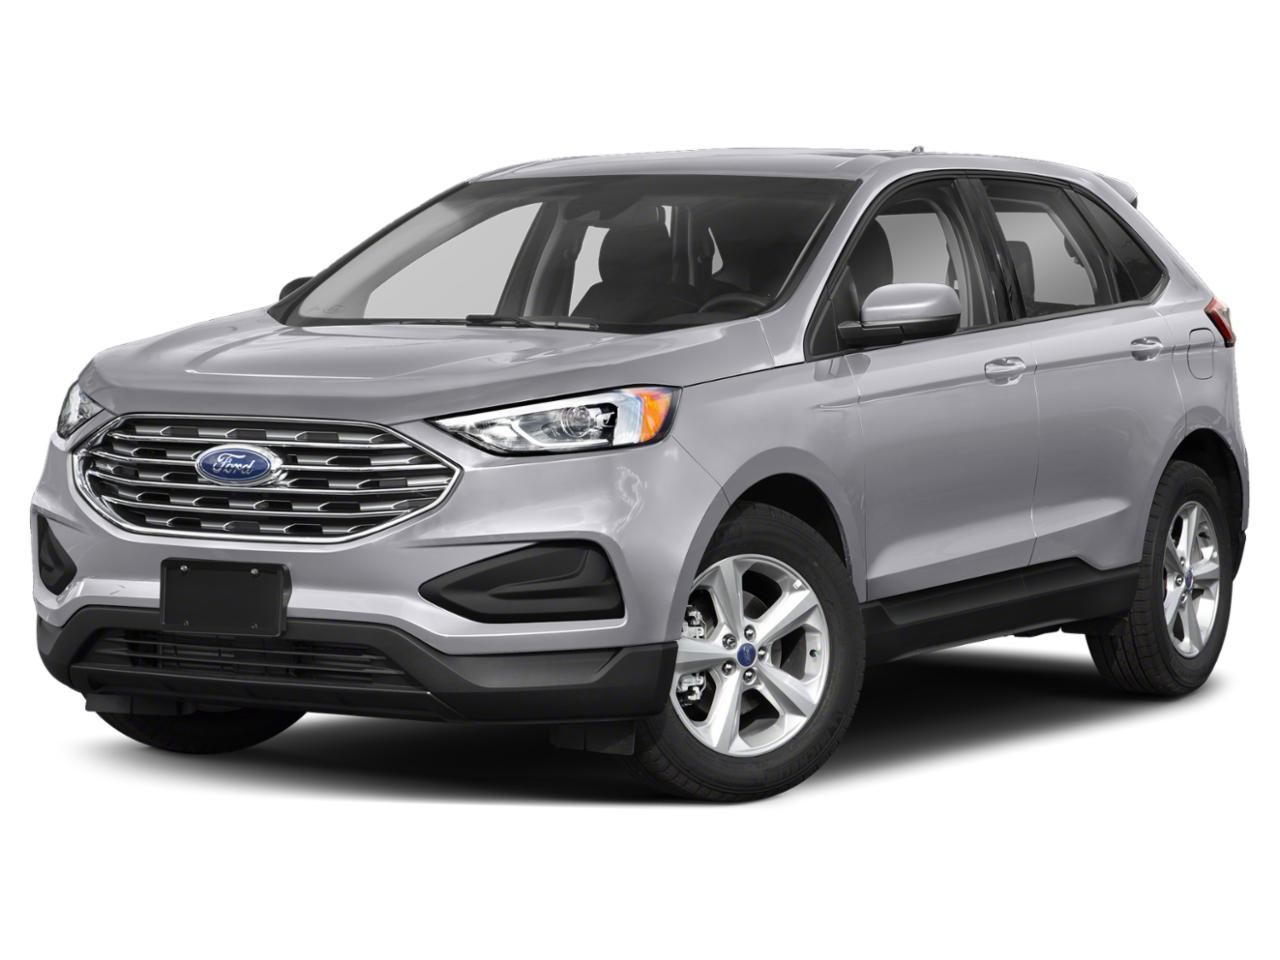 2020 Ford Edge Vehicle Photo in Souderton, PA 18964-1038